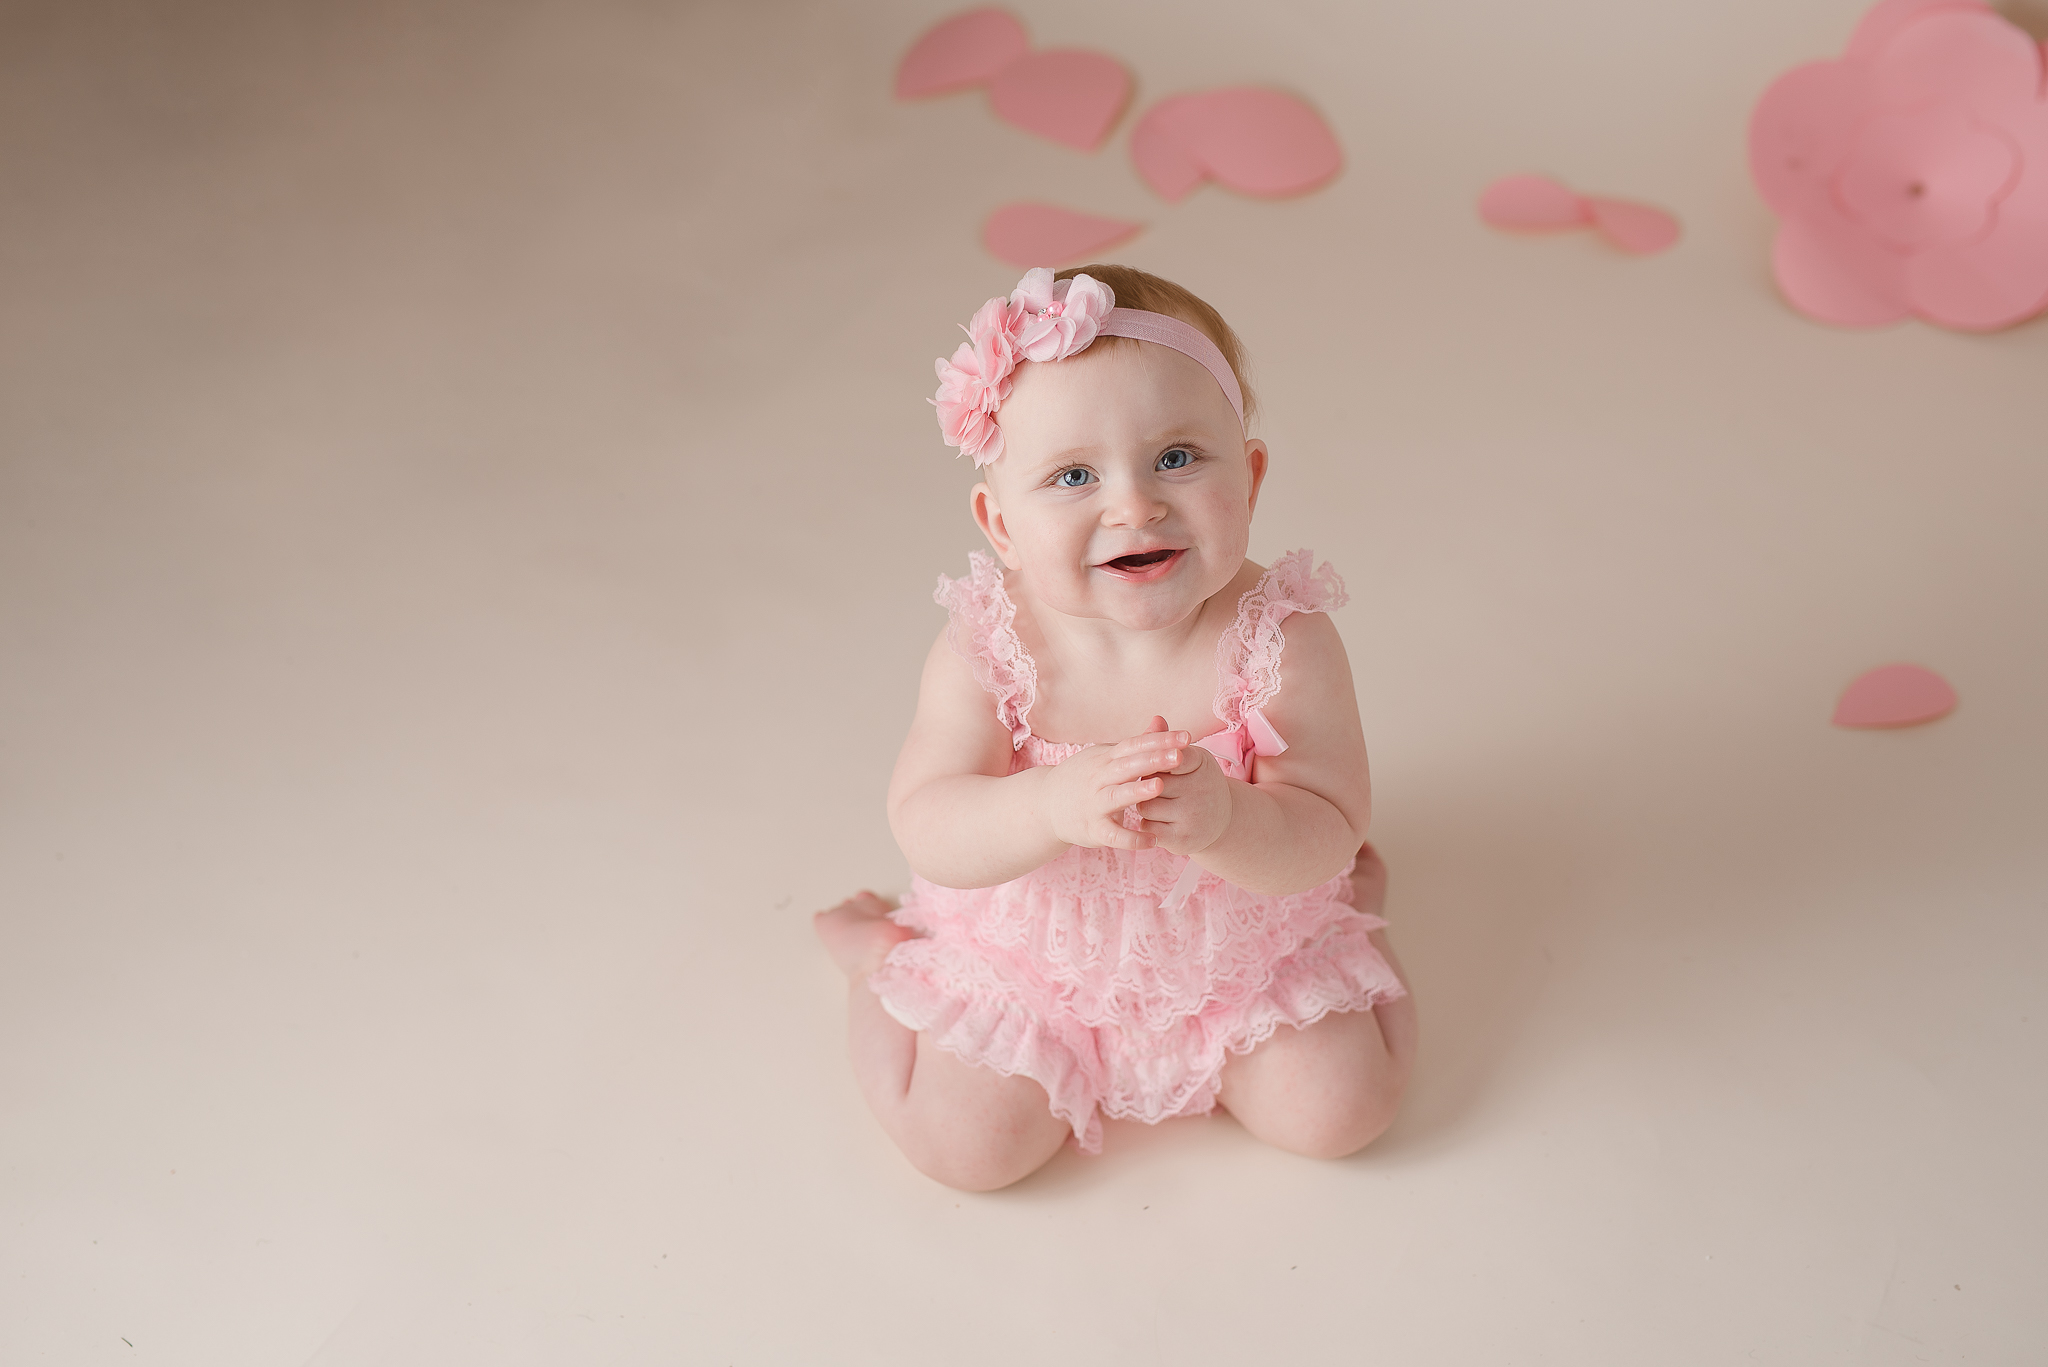 FirstBirthday267NaomiLuciennePhotography032019-Edit.jpg